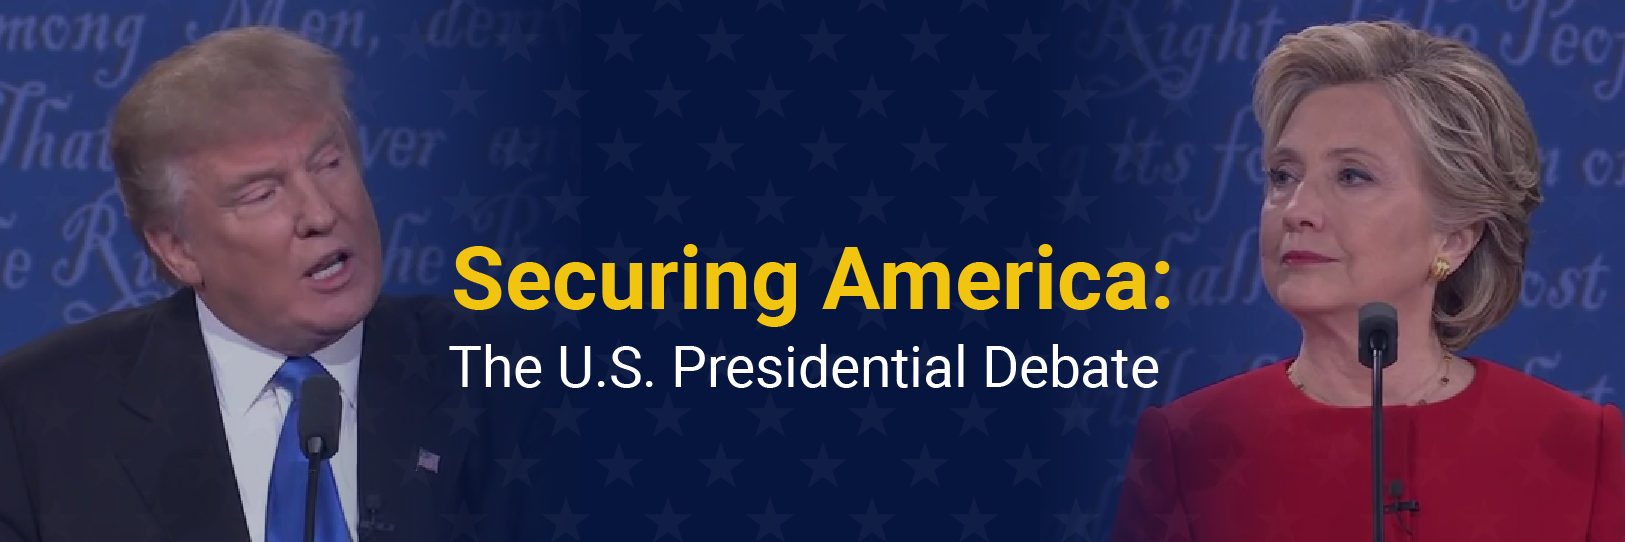 Securing America - The U.S. Presidential Debate